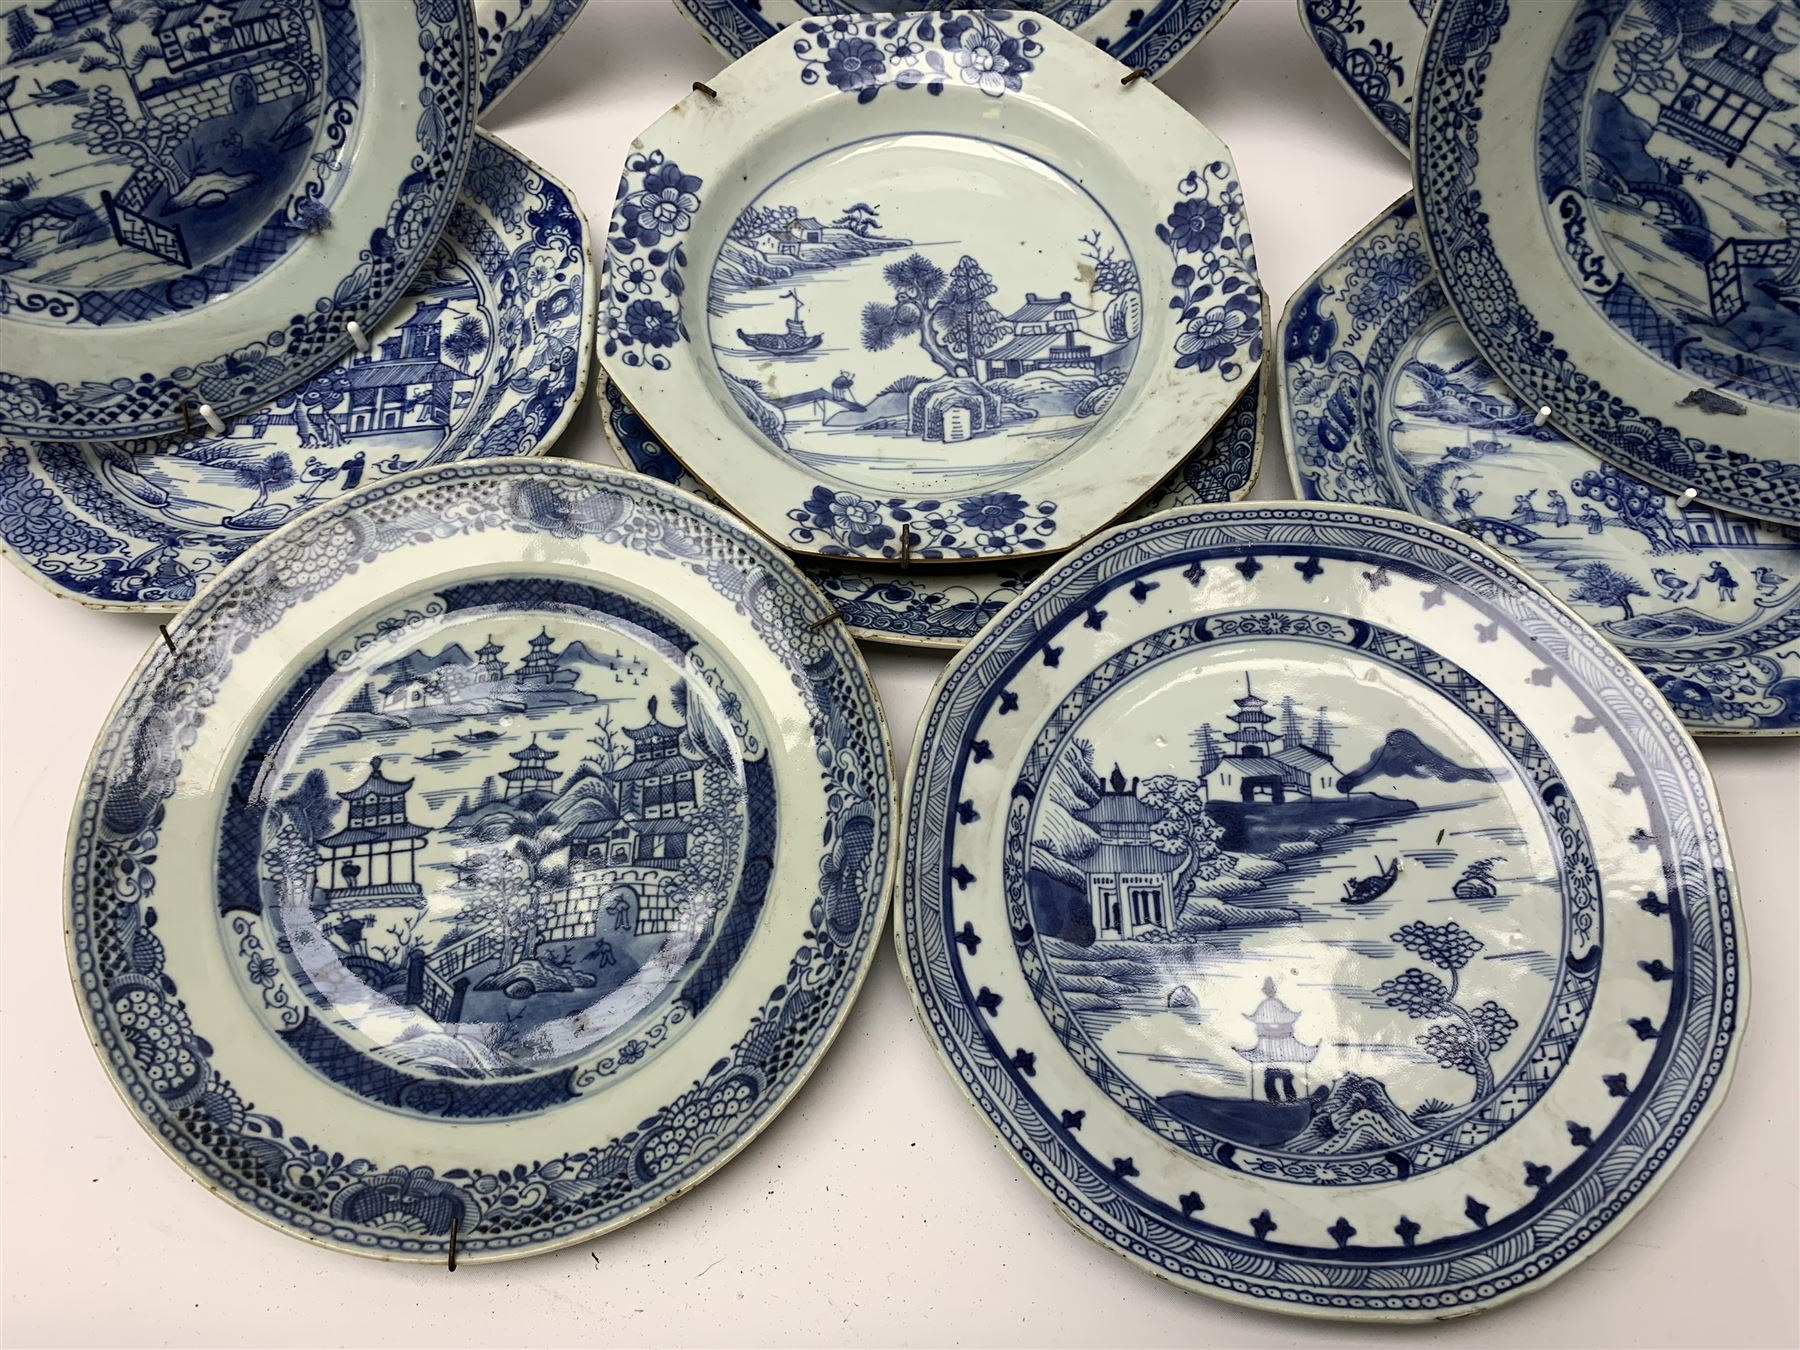 Late 18th/early 19th century Chinese export blue and white porcelain - Image 2 of 5